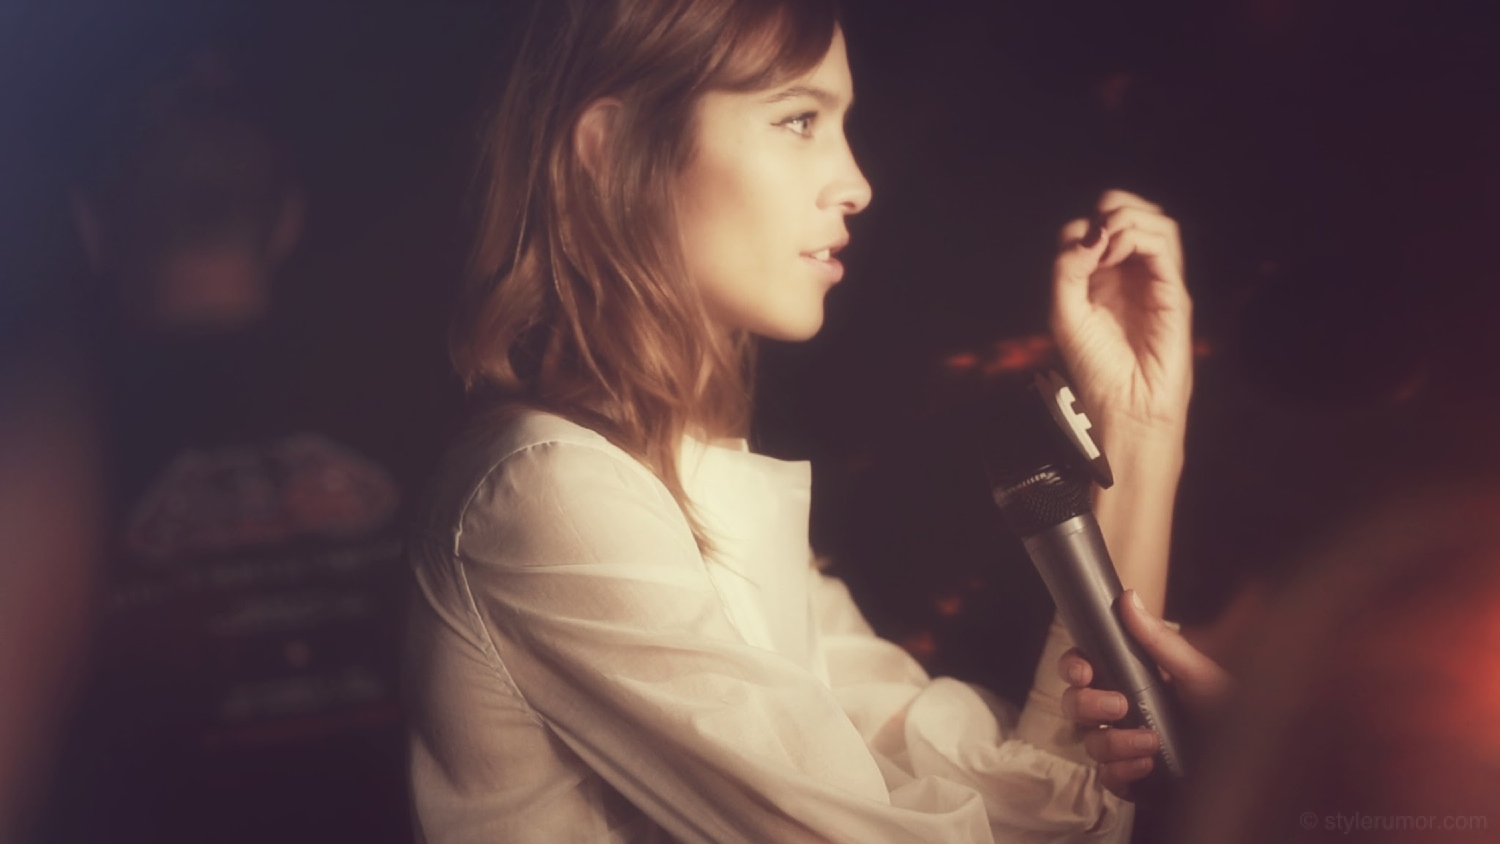 Backstage at the Alexa Chung Backstage at the Tommy Hilfiger Spring 2015 Show 22